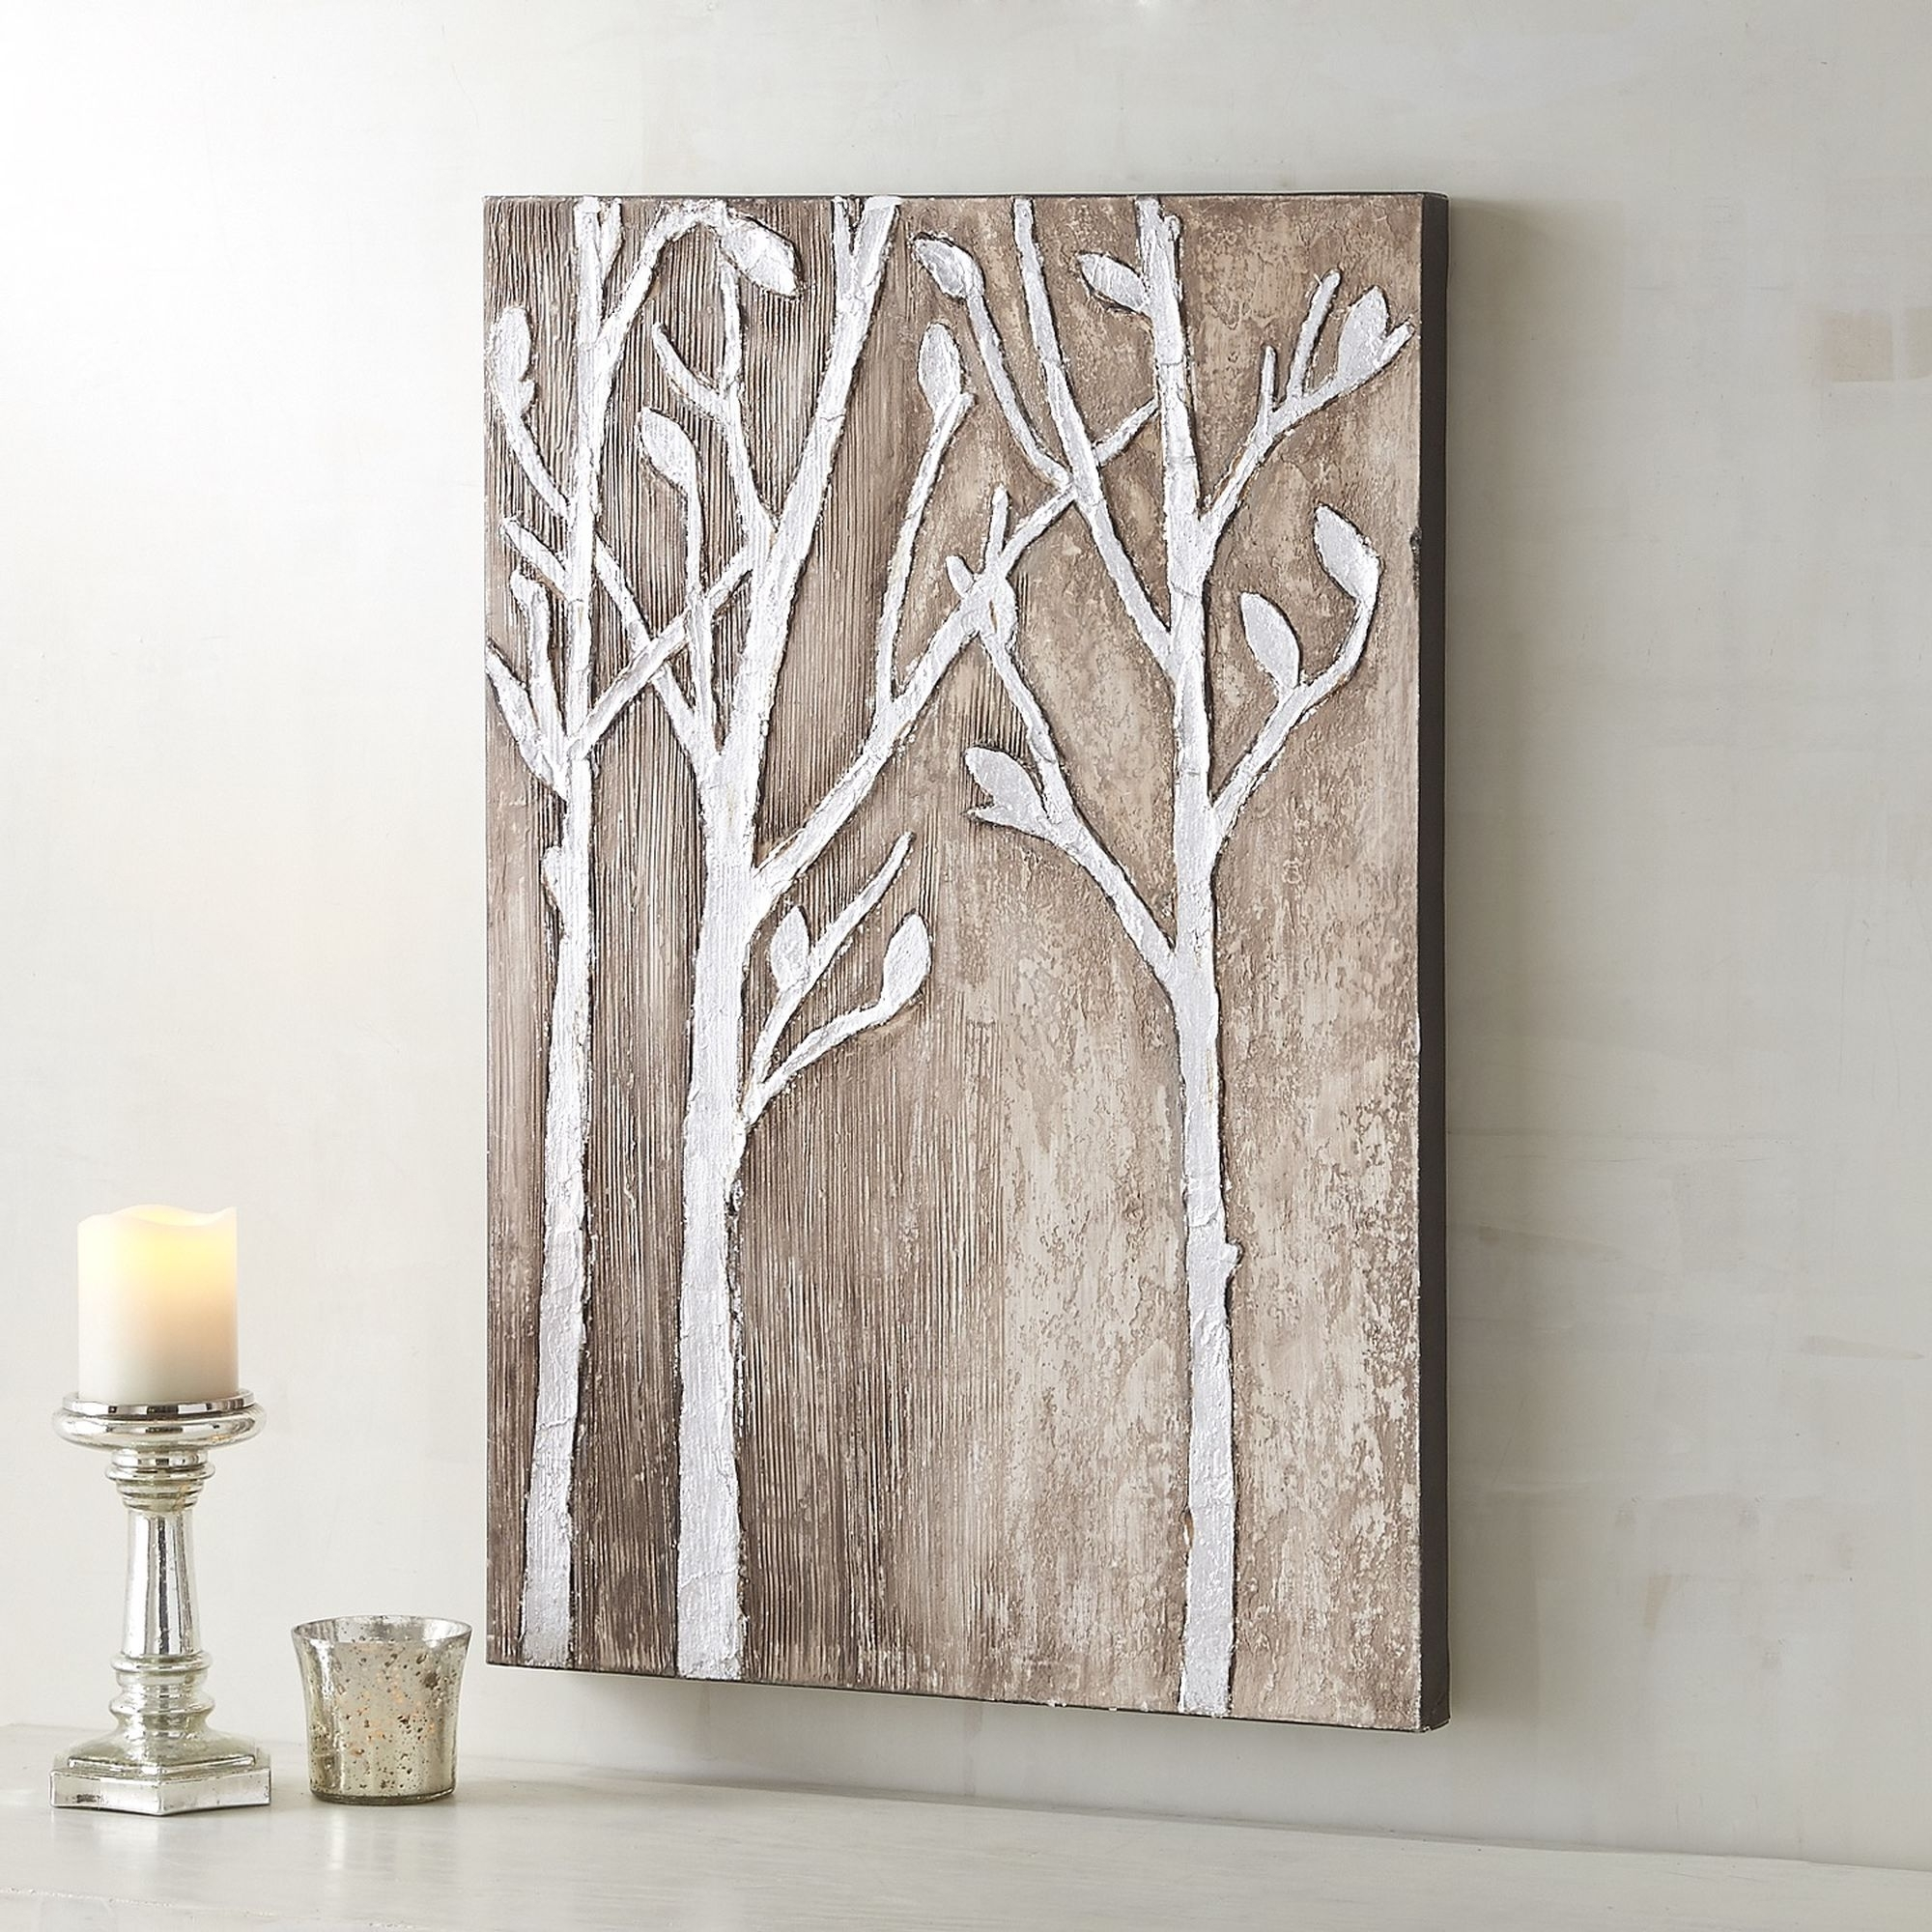 Fashionable Pier One Silver Birch Wall Art $62 Acrylic On Canvas Wall Art (View 11 of 15)